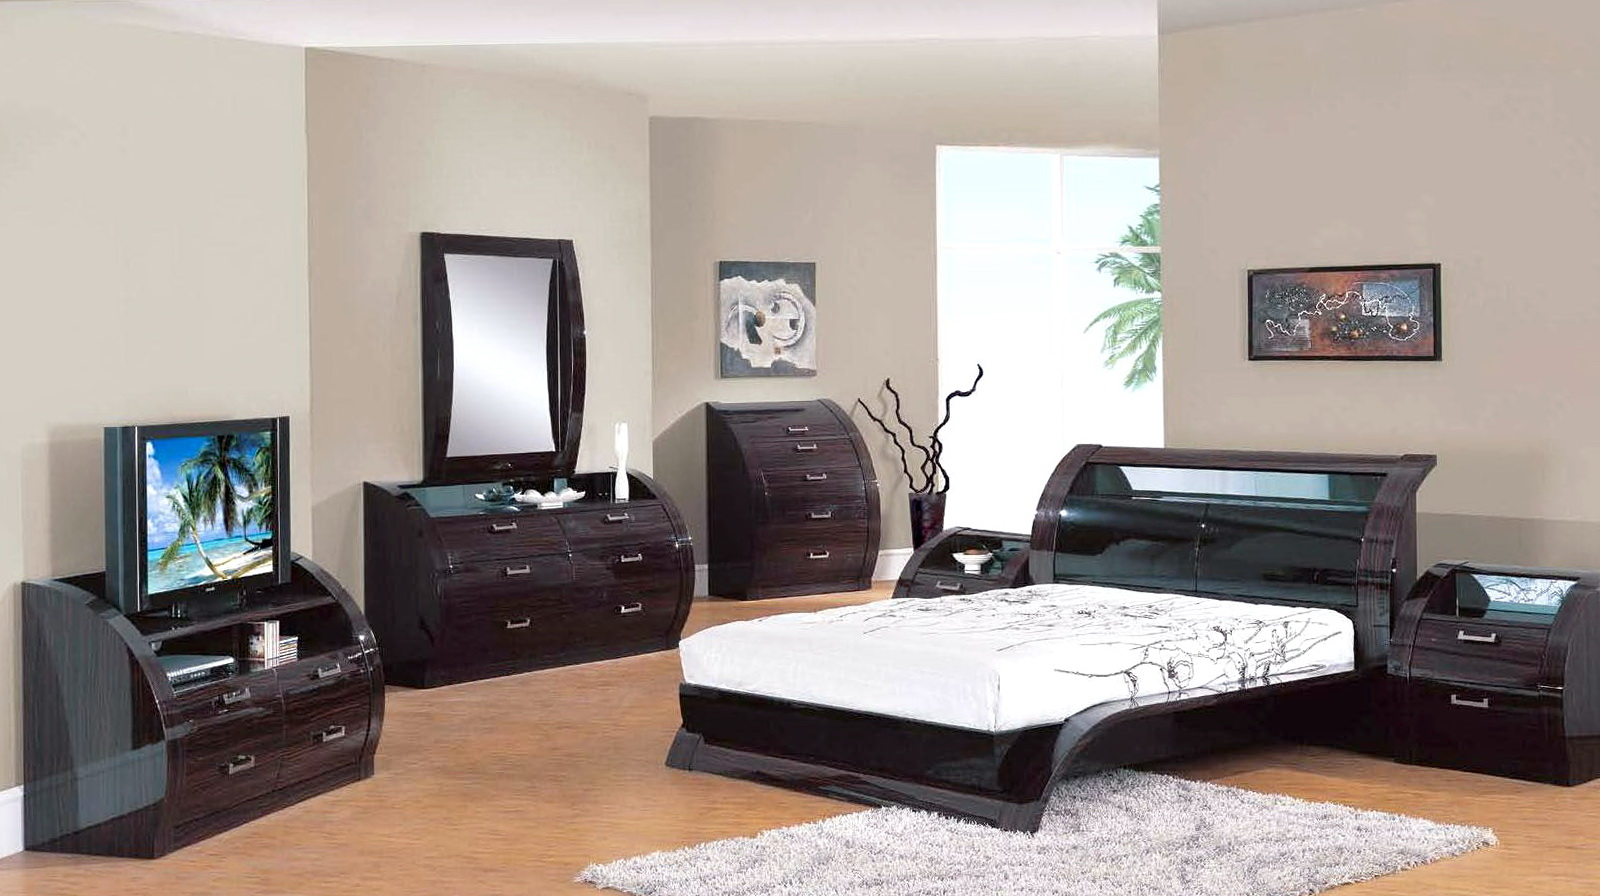 Mirrored bedroom set sale home design ideas for Mirrored bedroom furniture